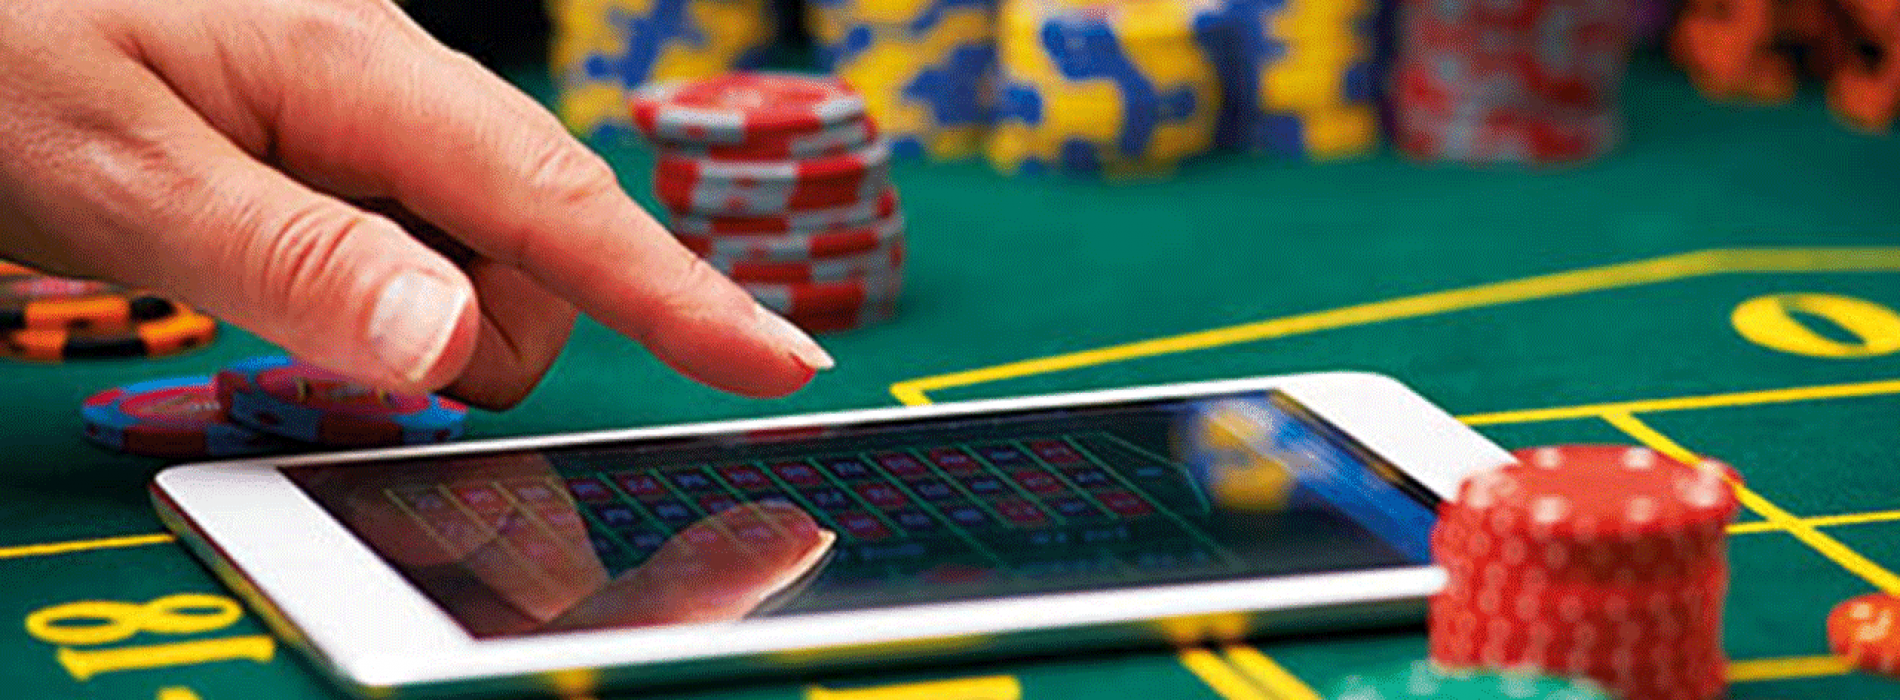 How to choose the best online gambling websites?